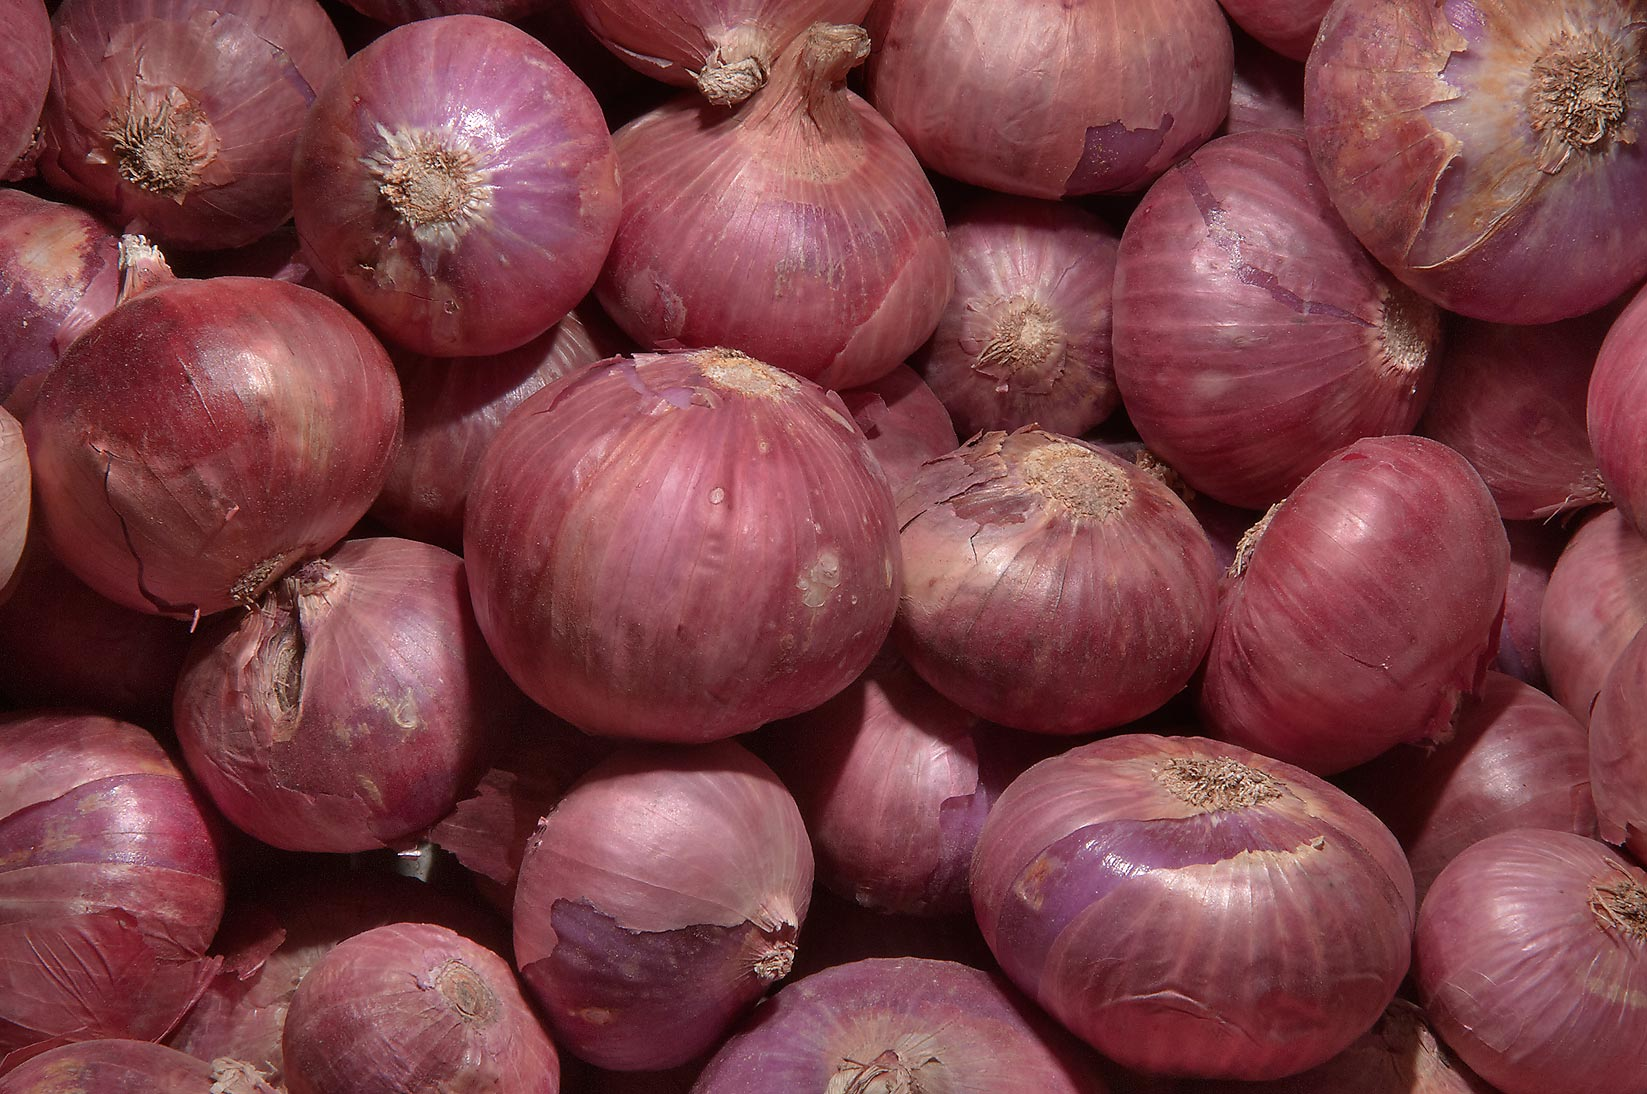 Onions in Vegetable Market, Wholesale Markets area. Doha, Qatar